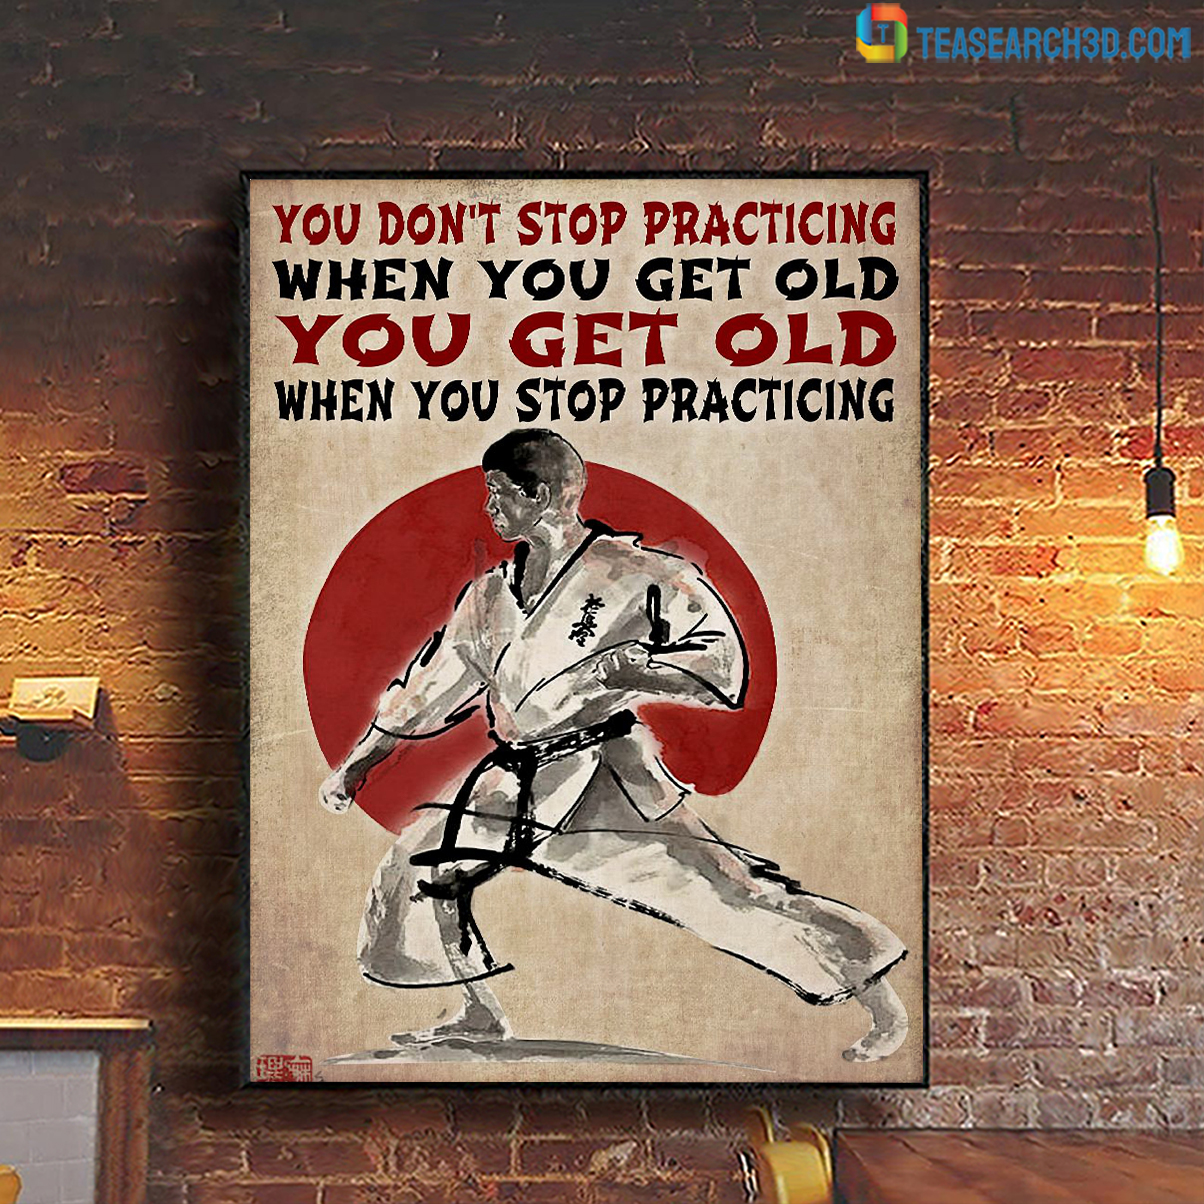 Karate poster you don't stop practicing when you get old